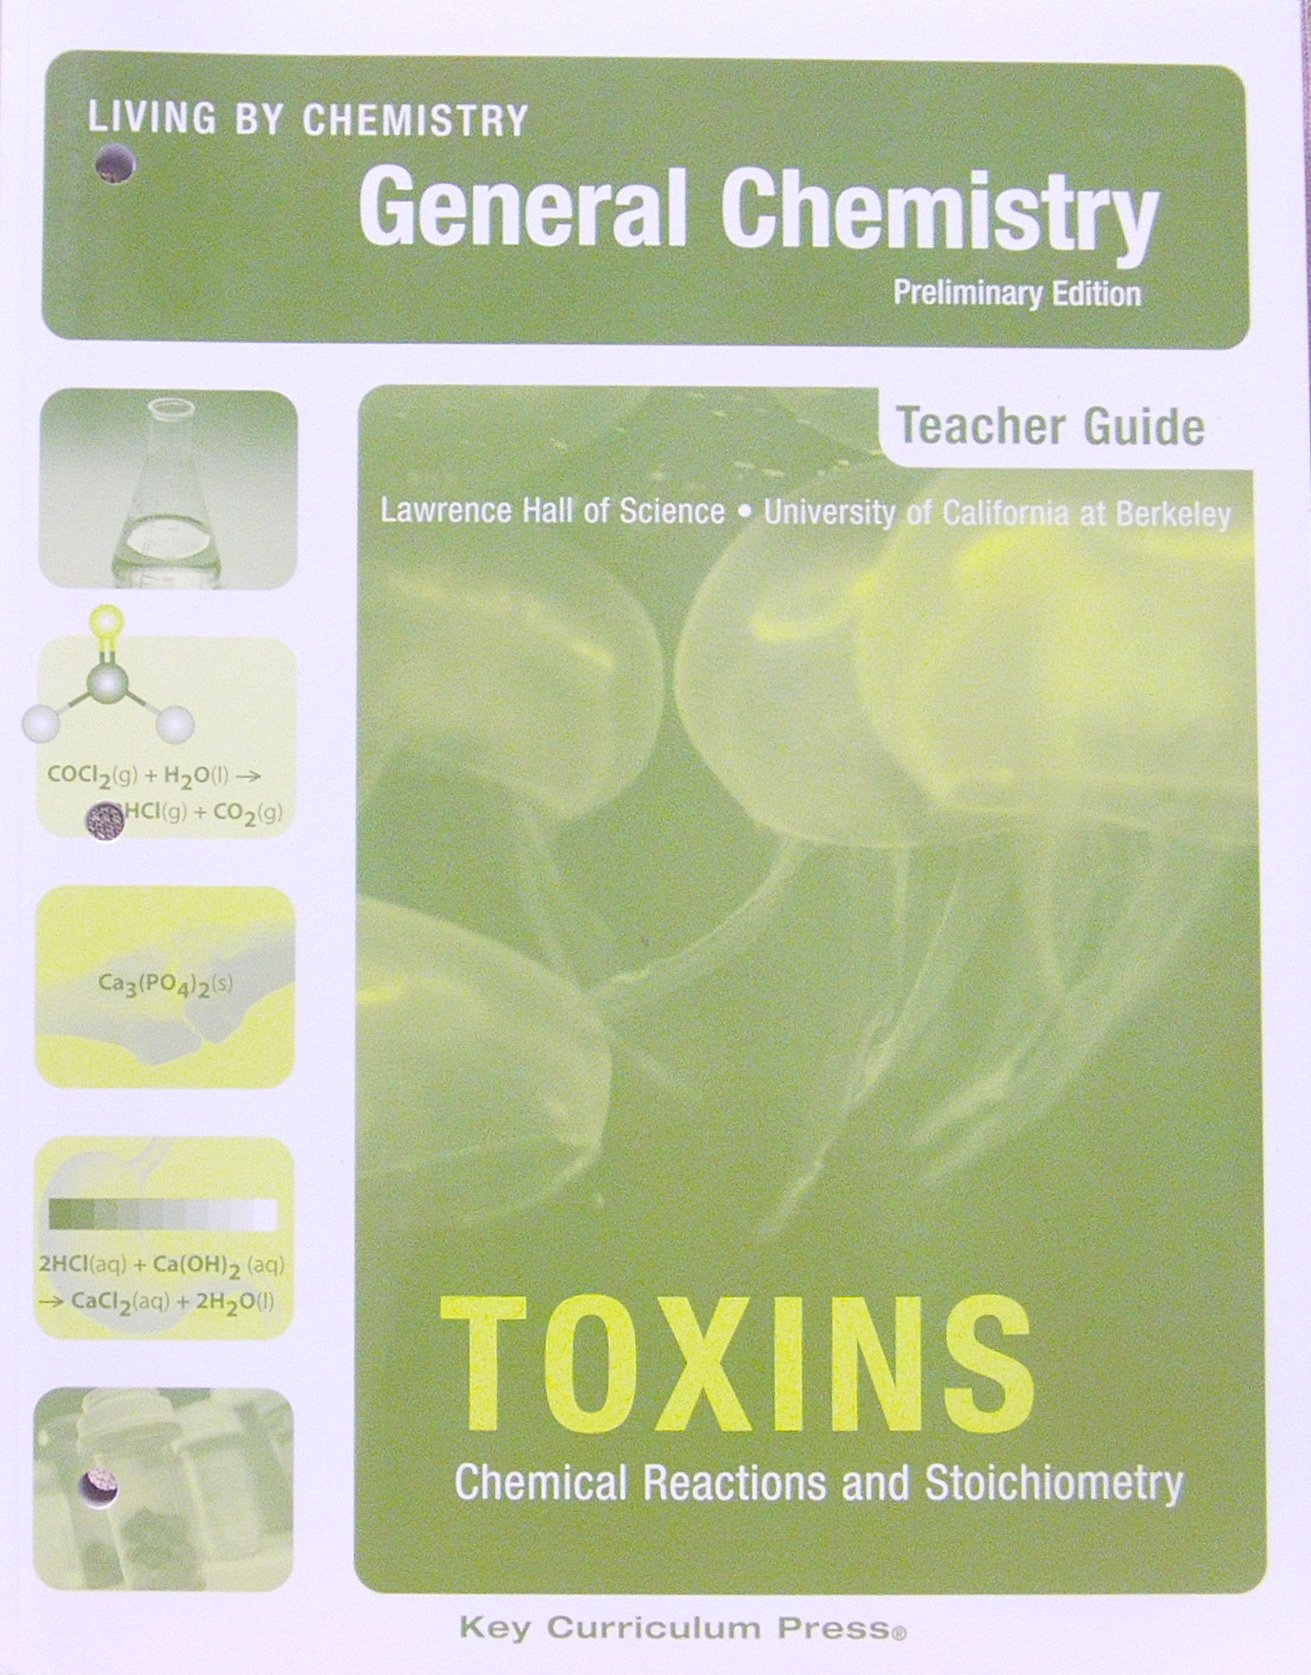 Living by chemistry lesson 8 unit 5 ebook assessment options array living by chemistry general chemistry teacher guide unit 4 toxins rh amazon com fandeluxe Image collections